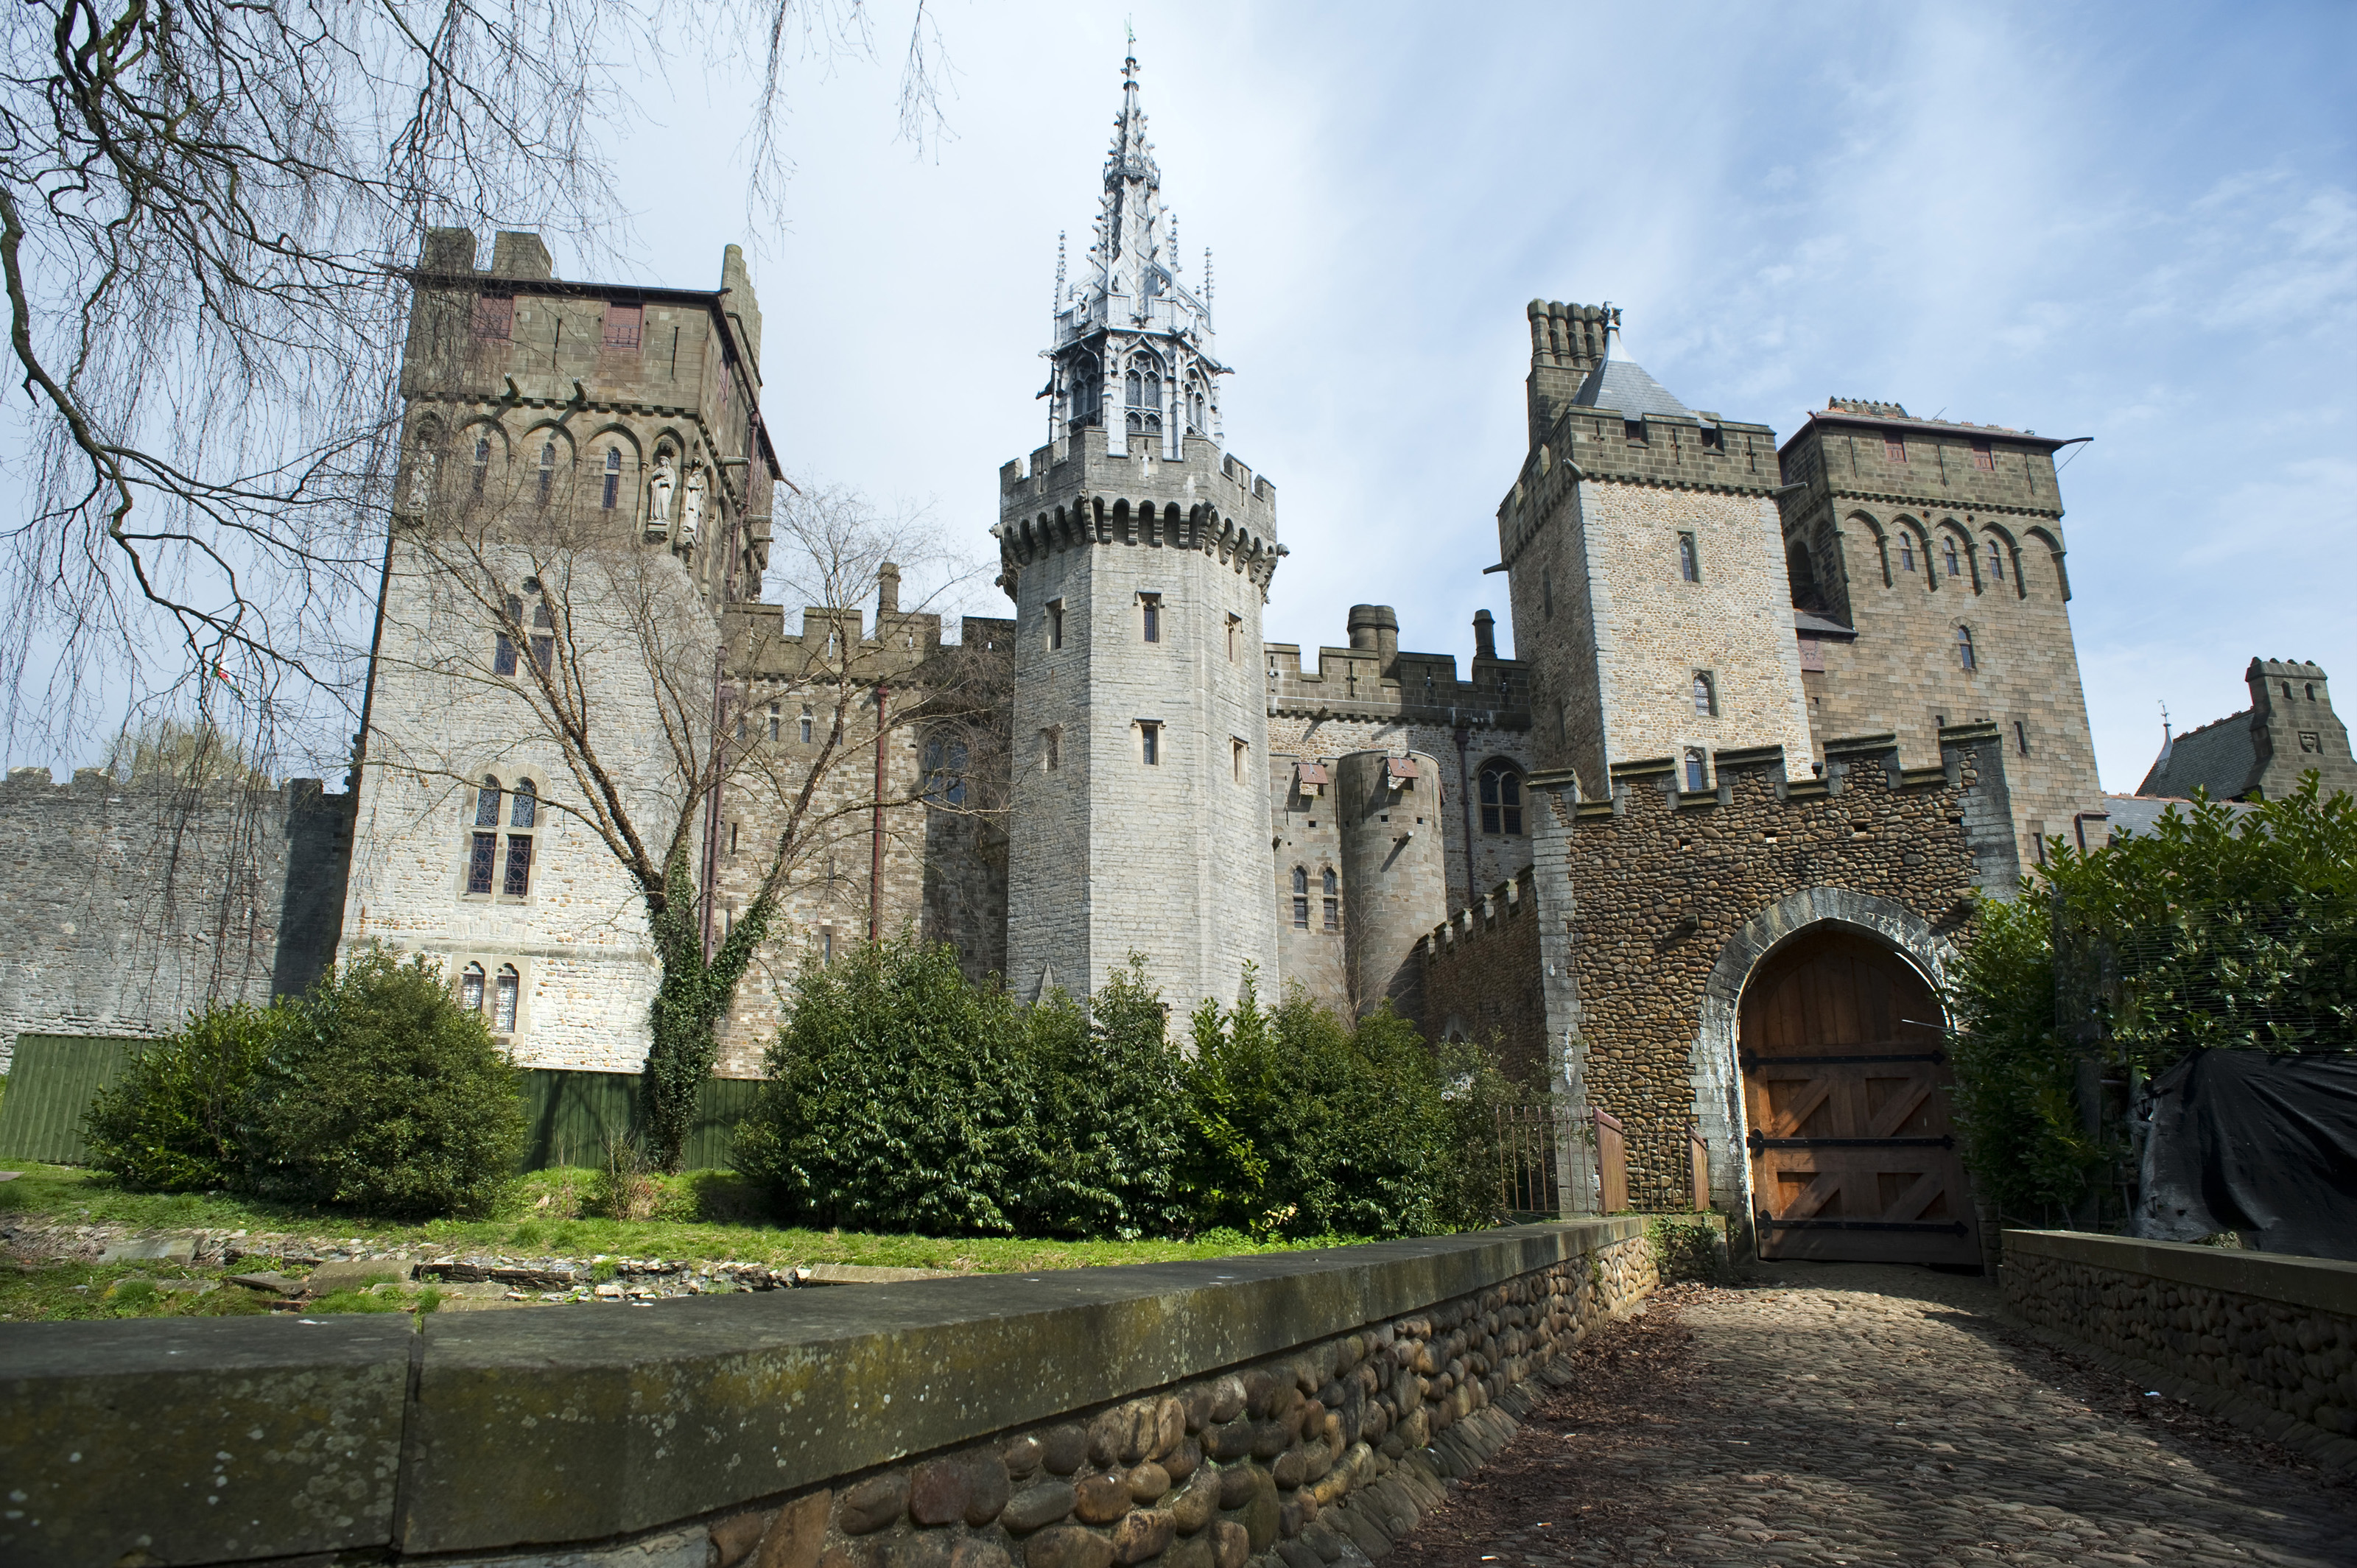 Cardiff Castle Apartments Wallpaper Travel HD Wallpapers 3200x2129